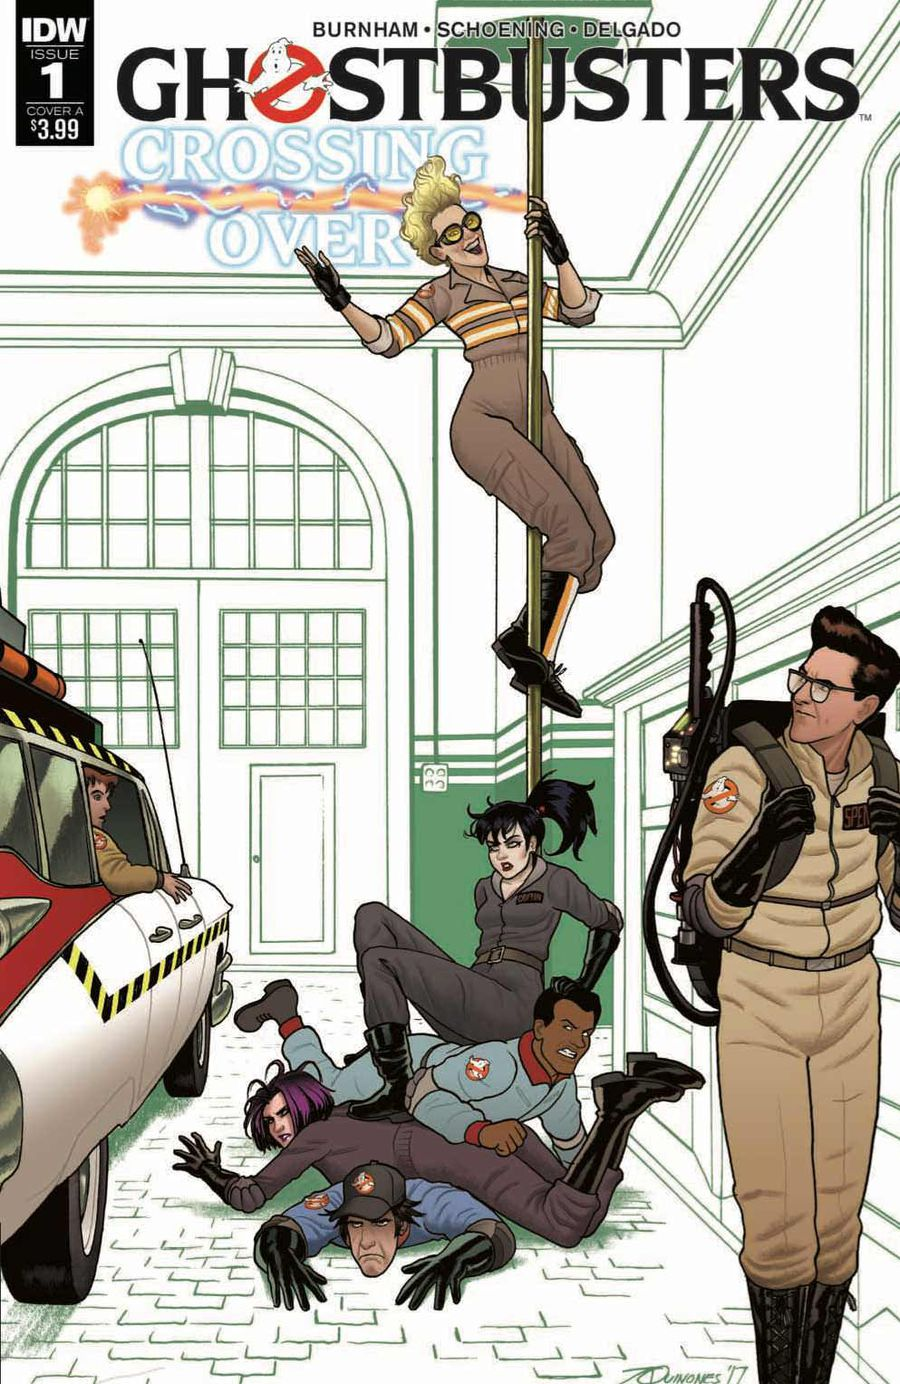 Ghostbusters: Crossing Over Issue 1 Cover